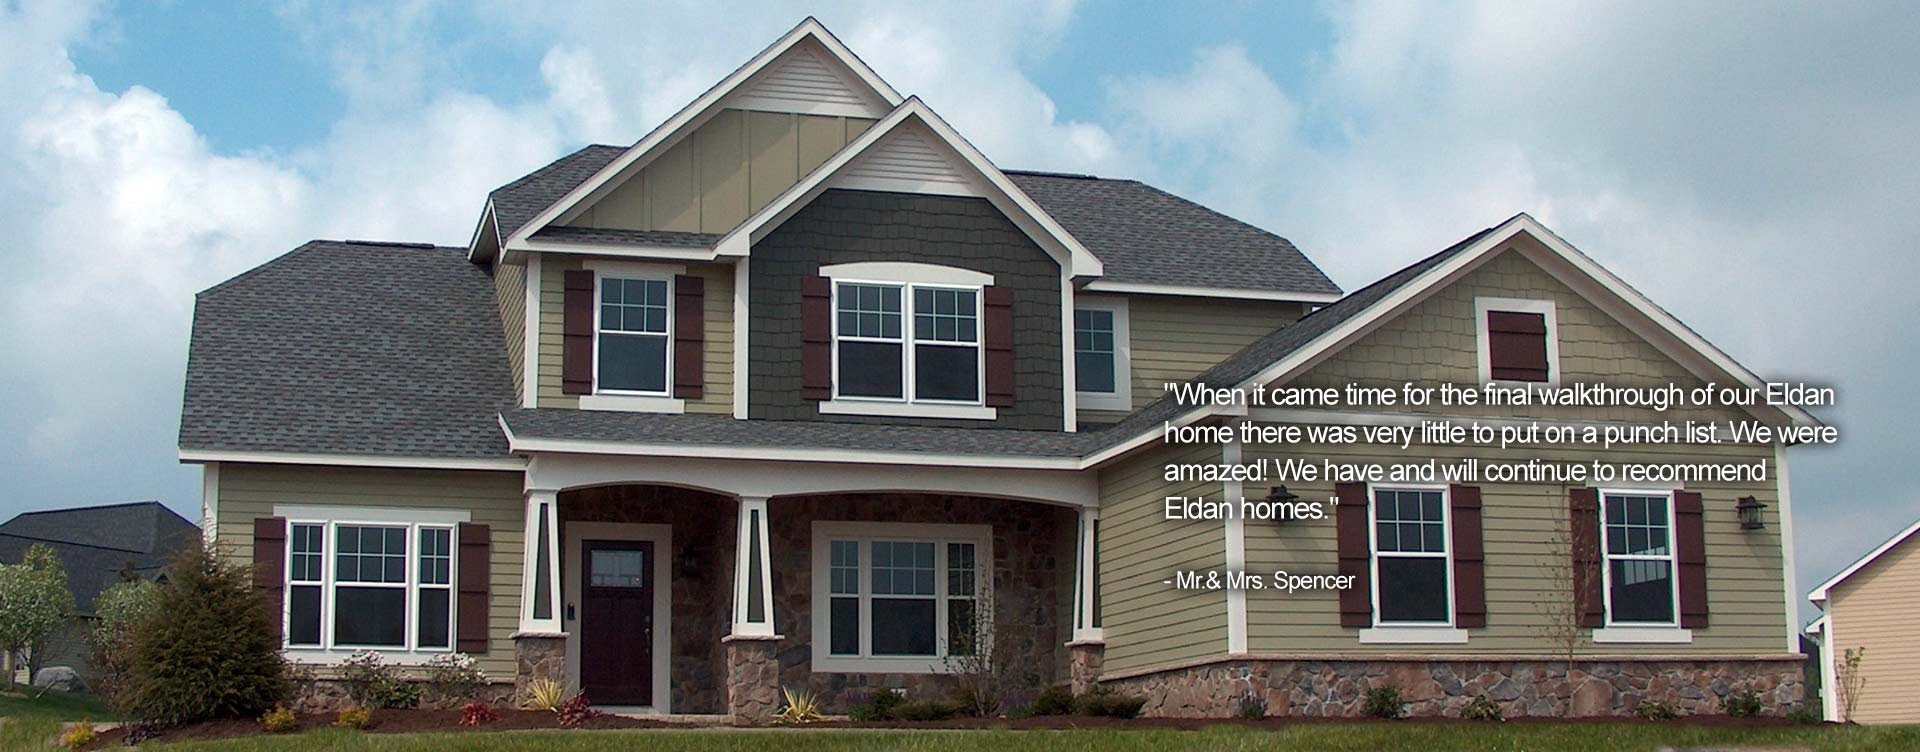 Cny Homes For Sale In Syracuse Ny Central New York Upstate New York Homes For Sale Eldan Homes